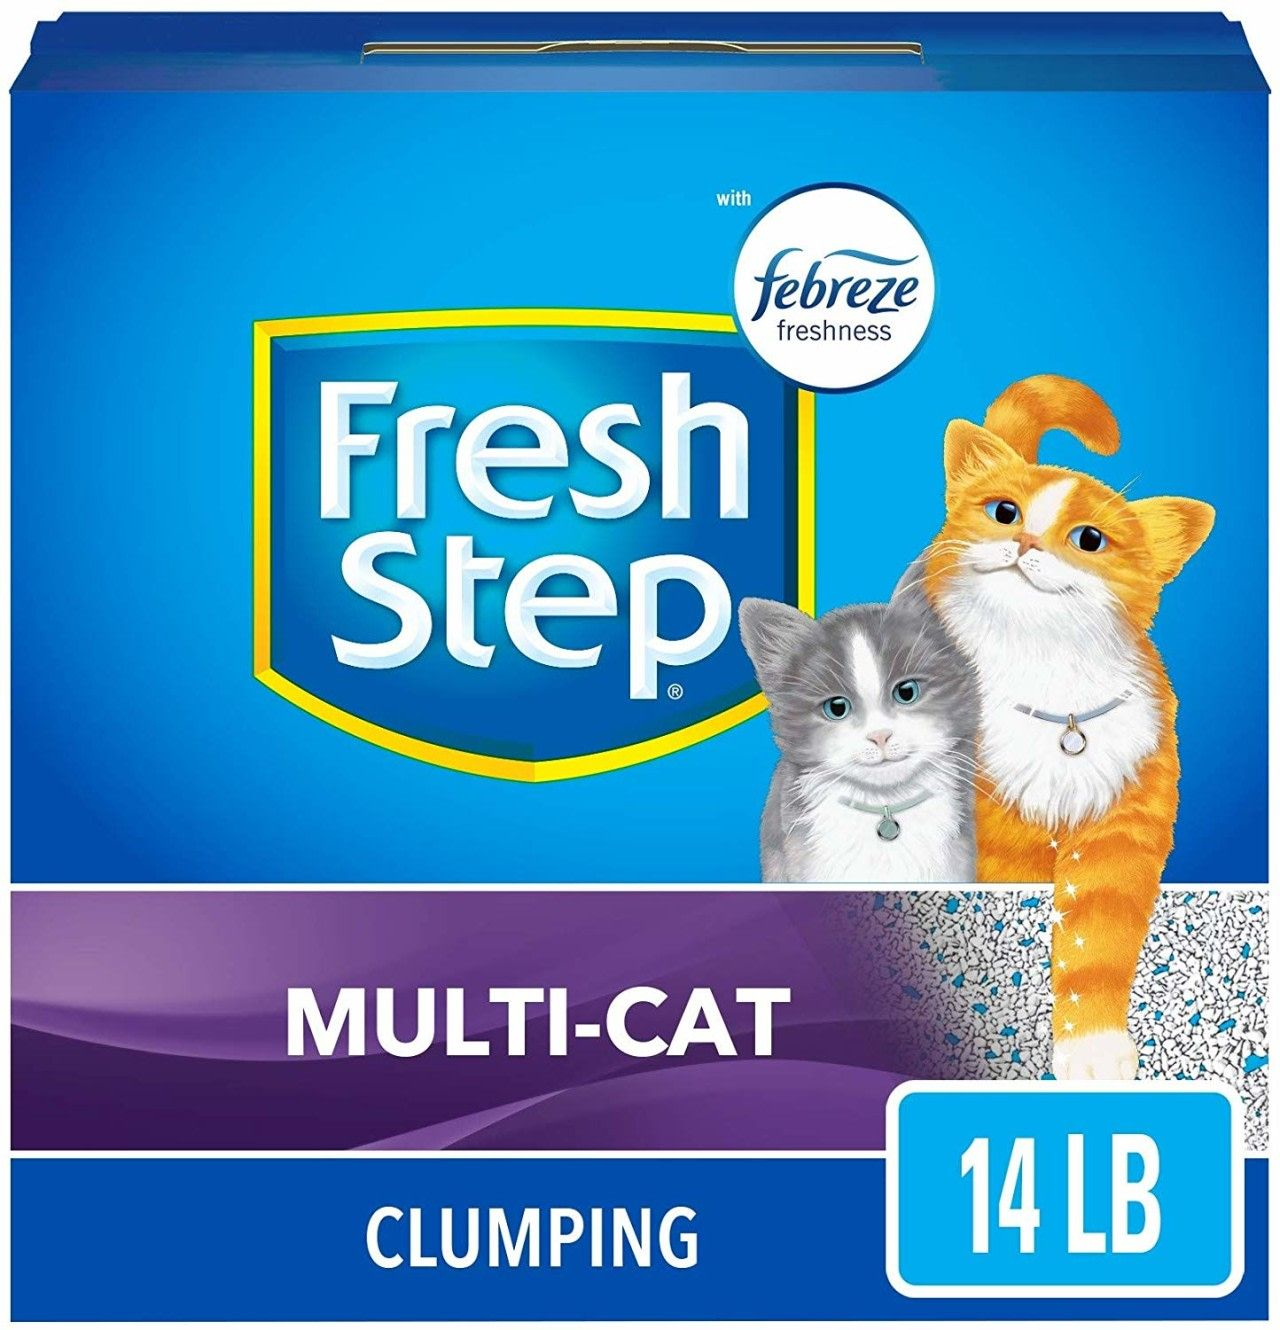 Fresh Step Multi Cat Clumping Litter With Febreze 14 Lb As Low As 7 55 Become A Coupon Queen In 2020 Clumping Cat Litter Cat Litter Cats